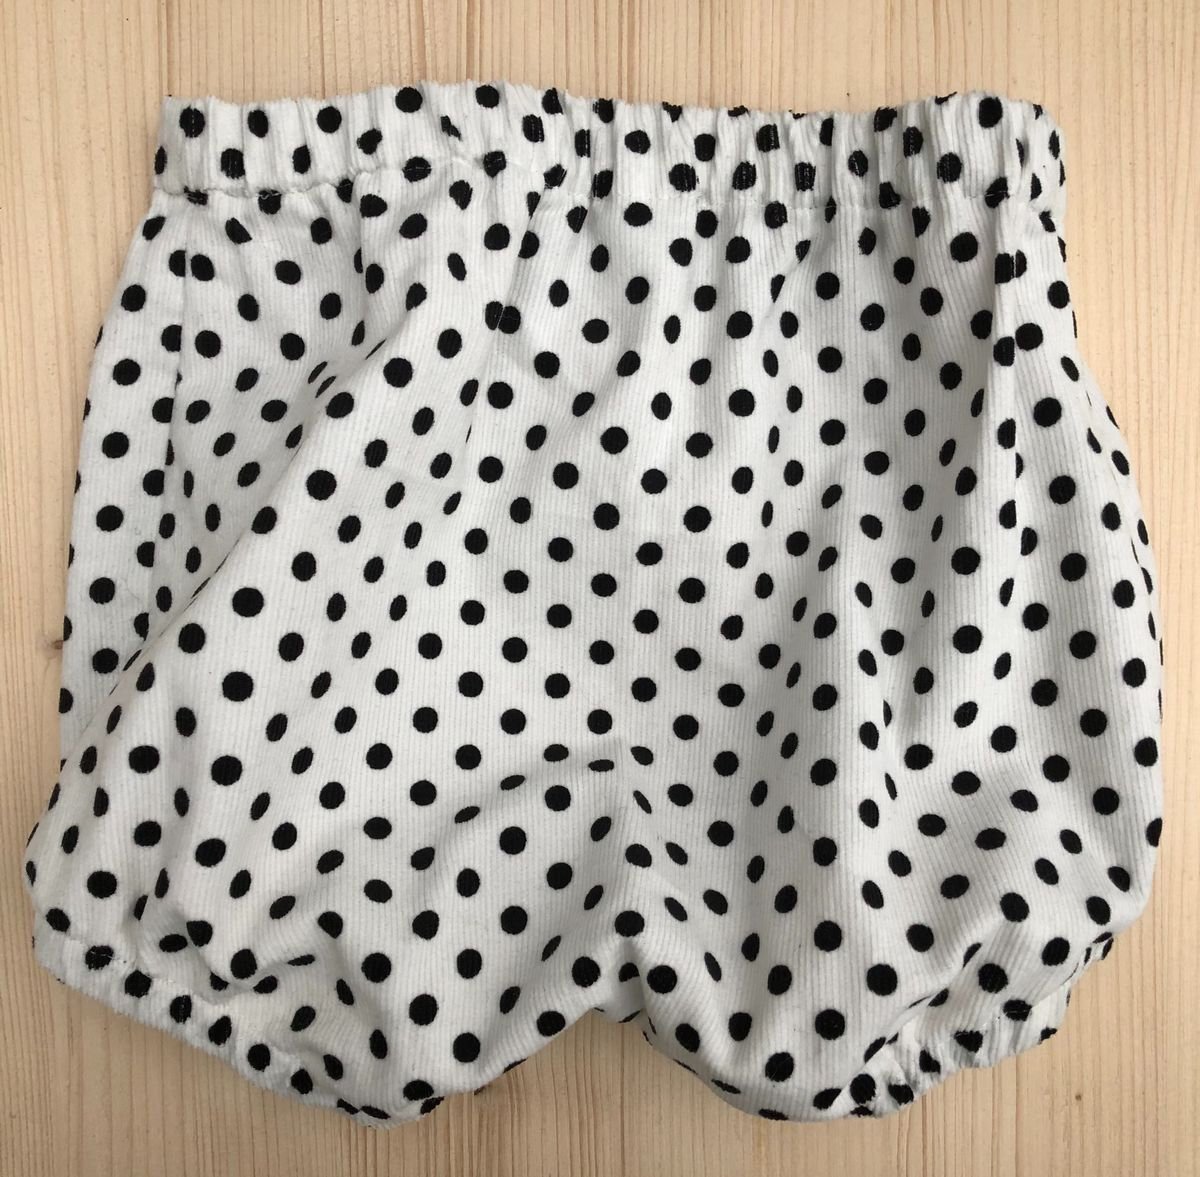 Corduroy bubble leg baby/toddler bloomers - White/Black spots - product images  of